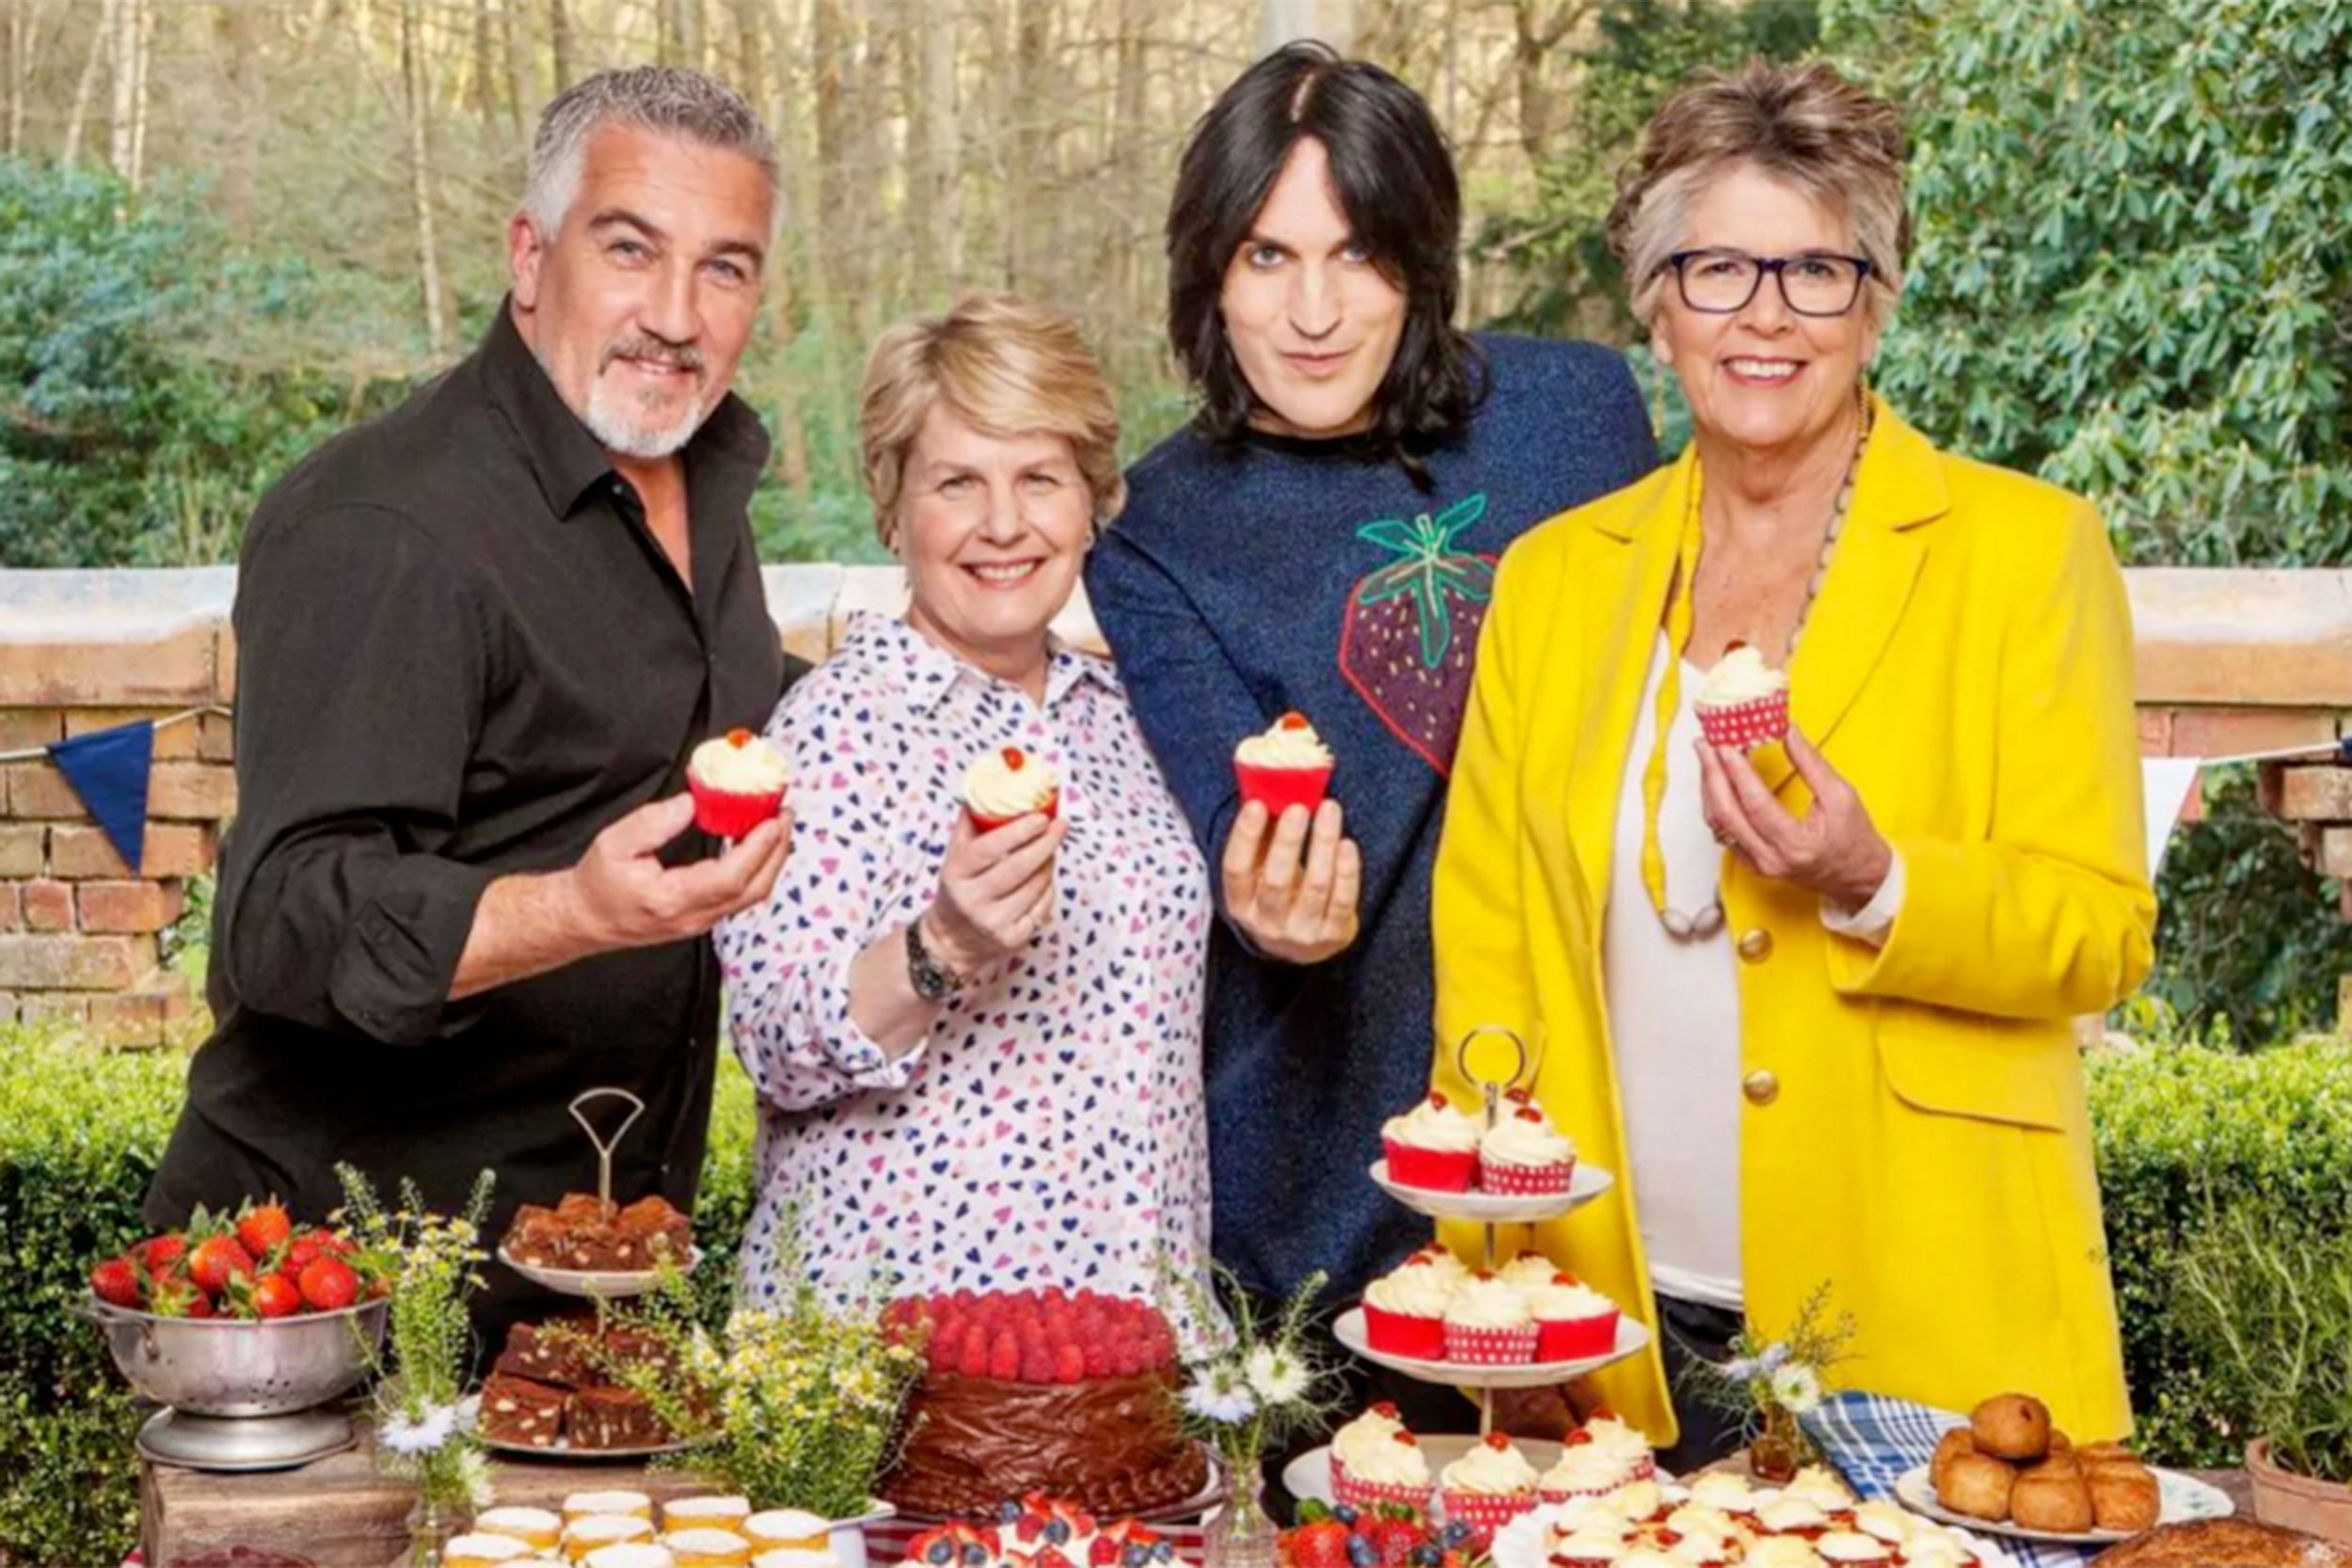 Why Everyone Loves the Great British Baking Show